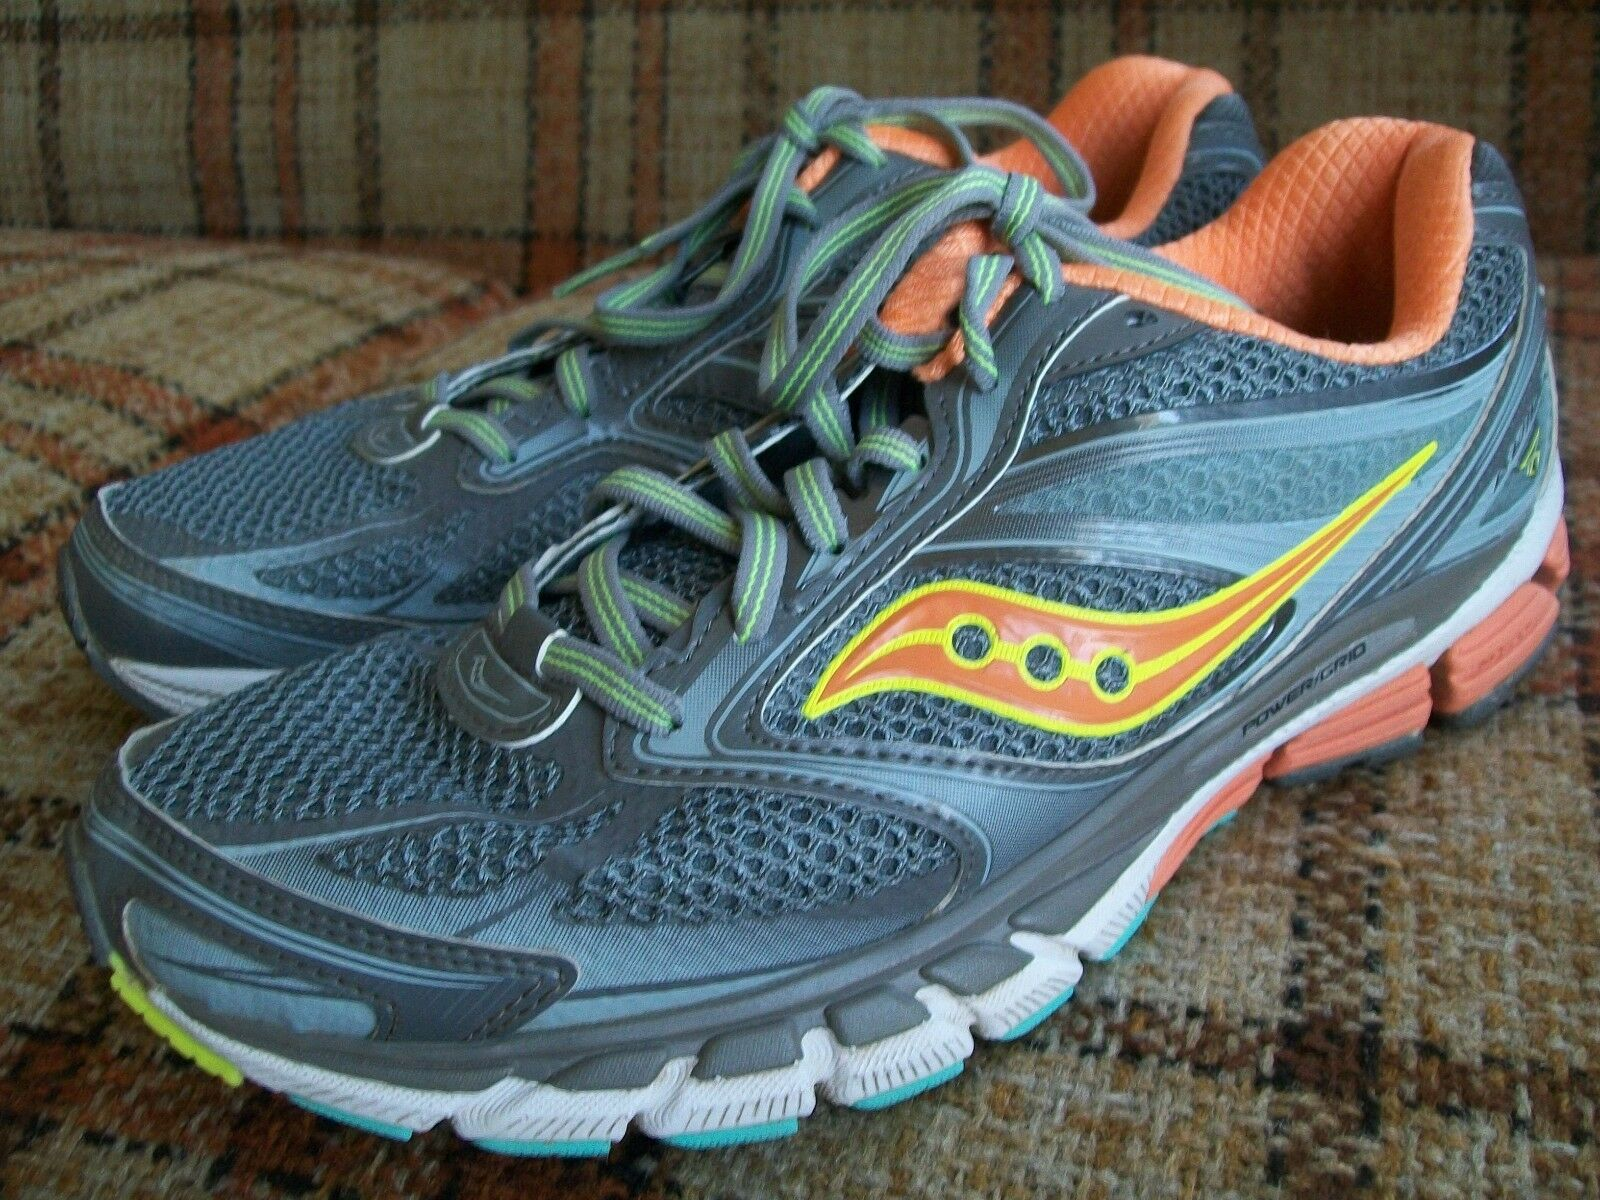 Saucony Womens Size 10 (EUR 42) Running shoes S-10256-2